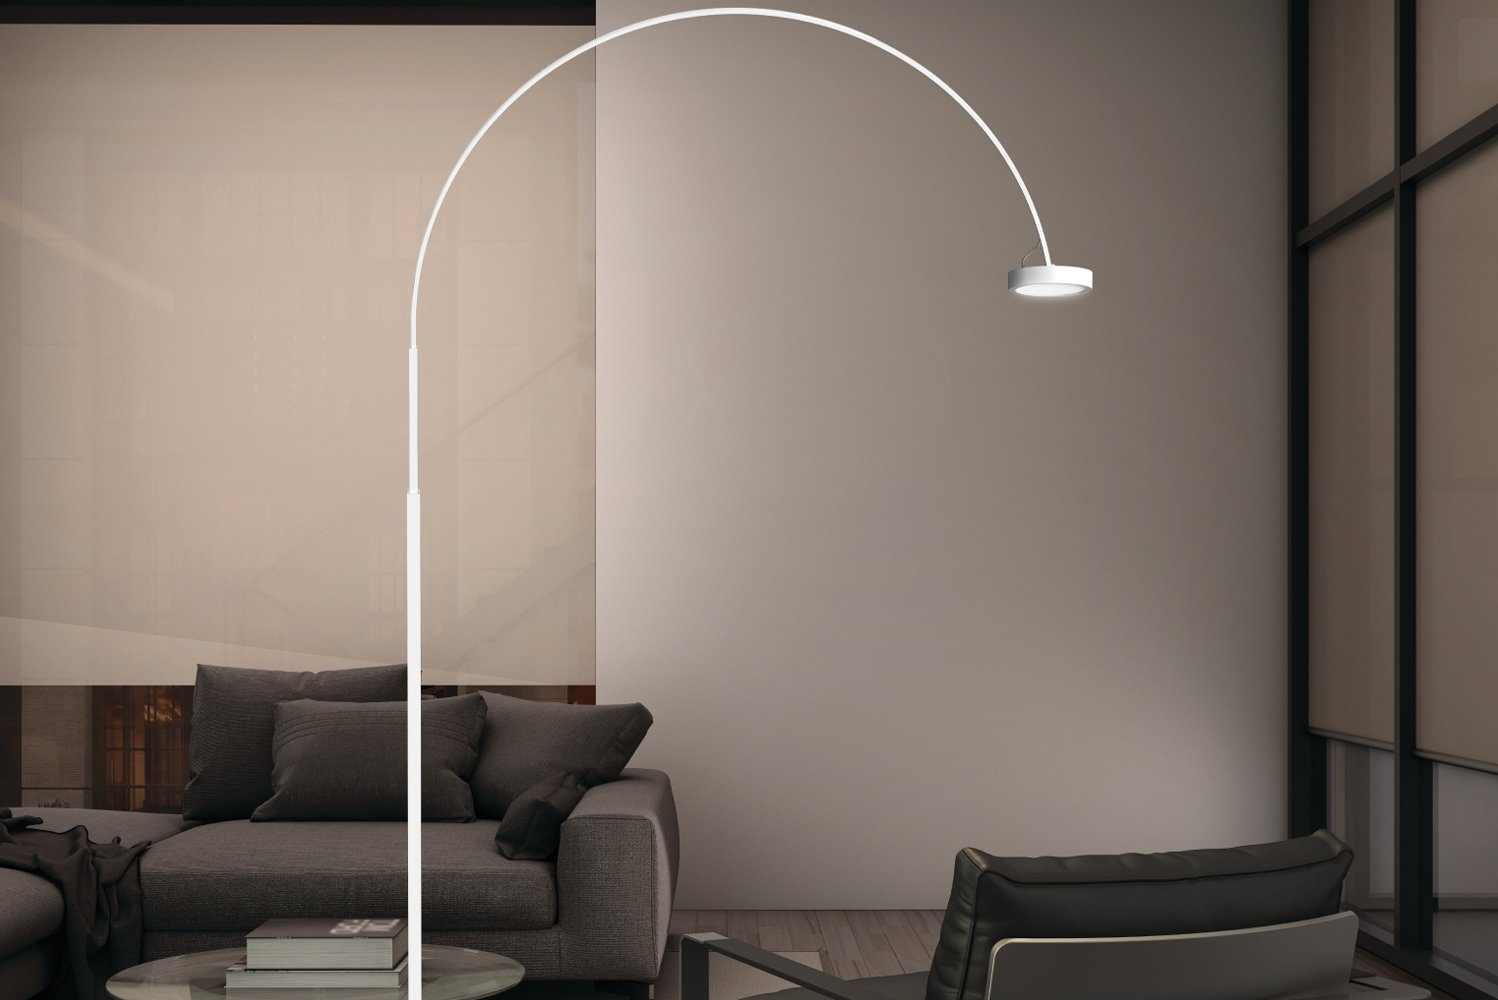 The Pluck lamp lens demonstrates technological innovation through the incorporation of four layers of film diffusion.